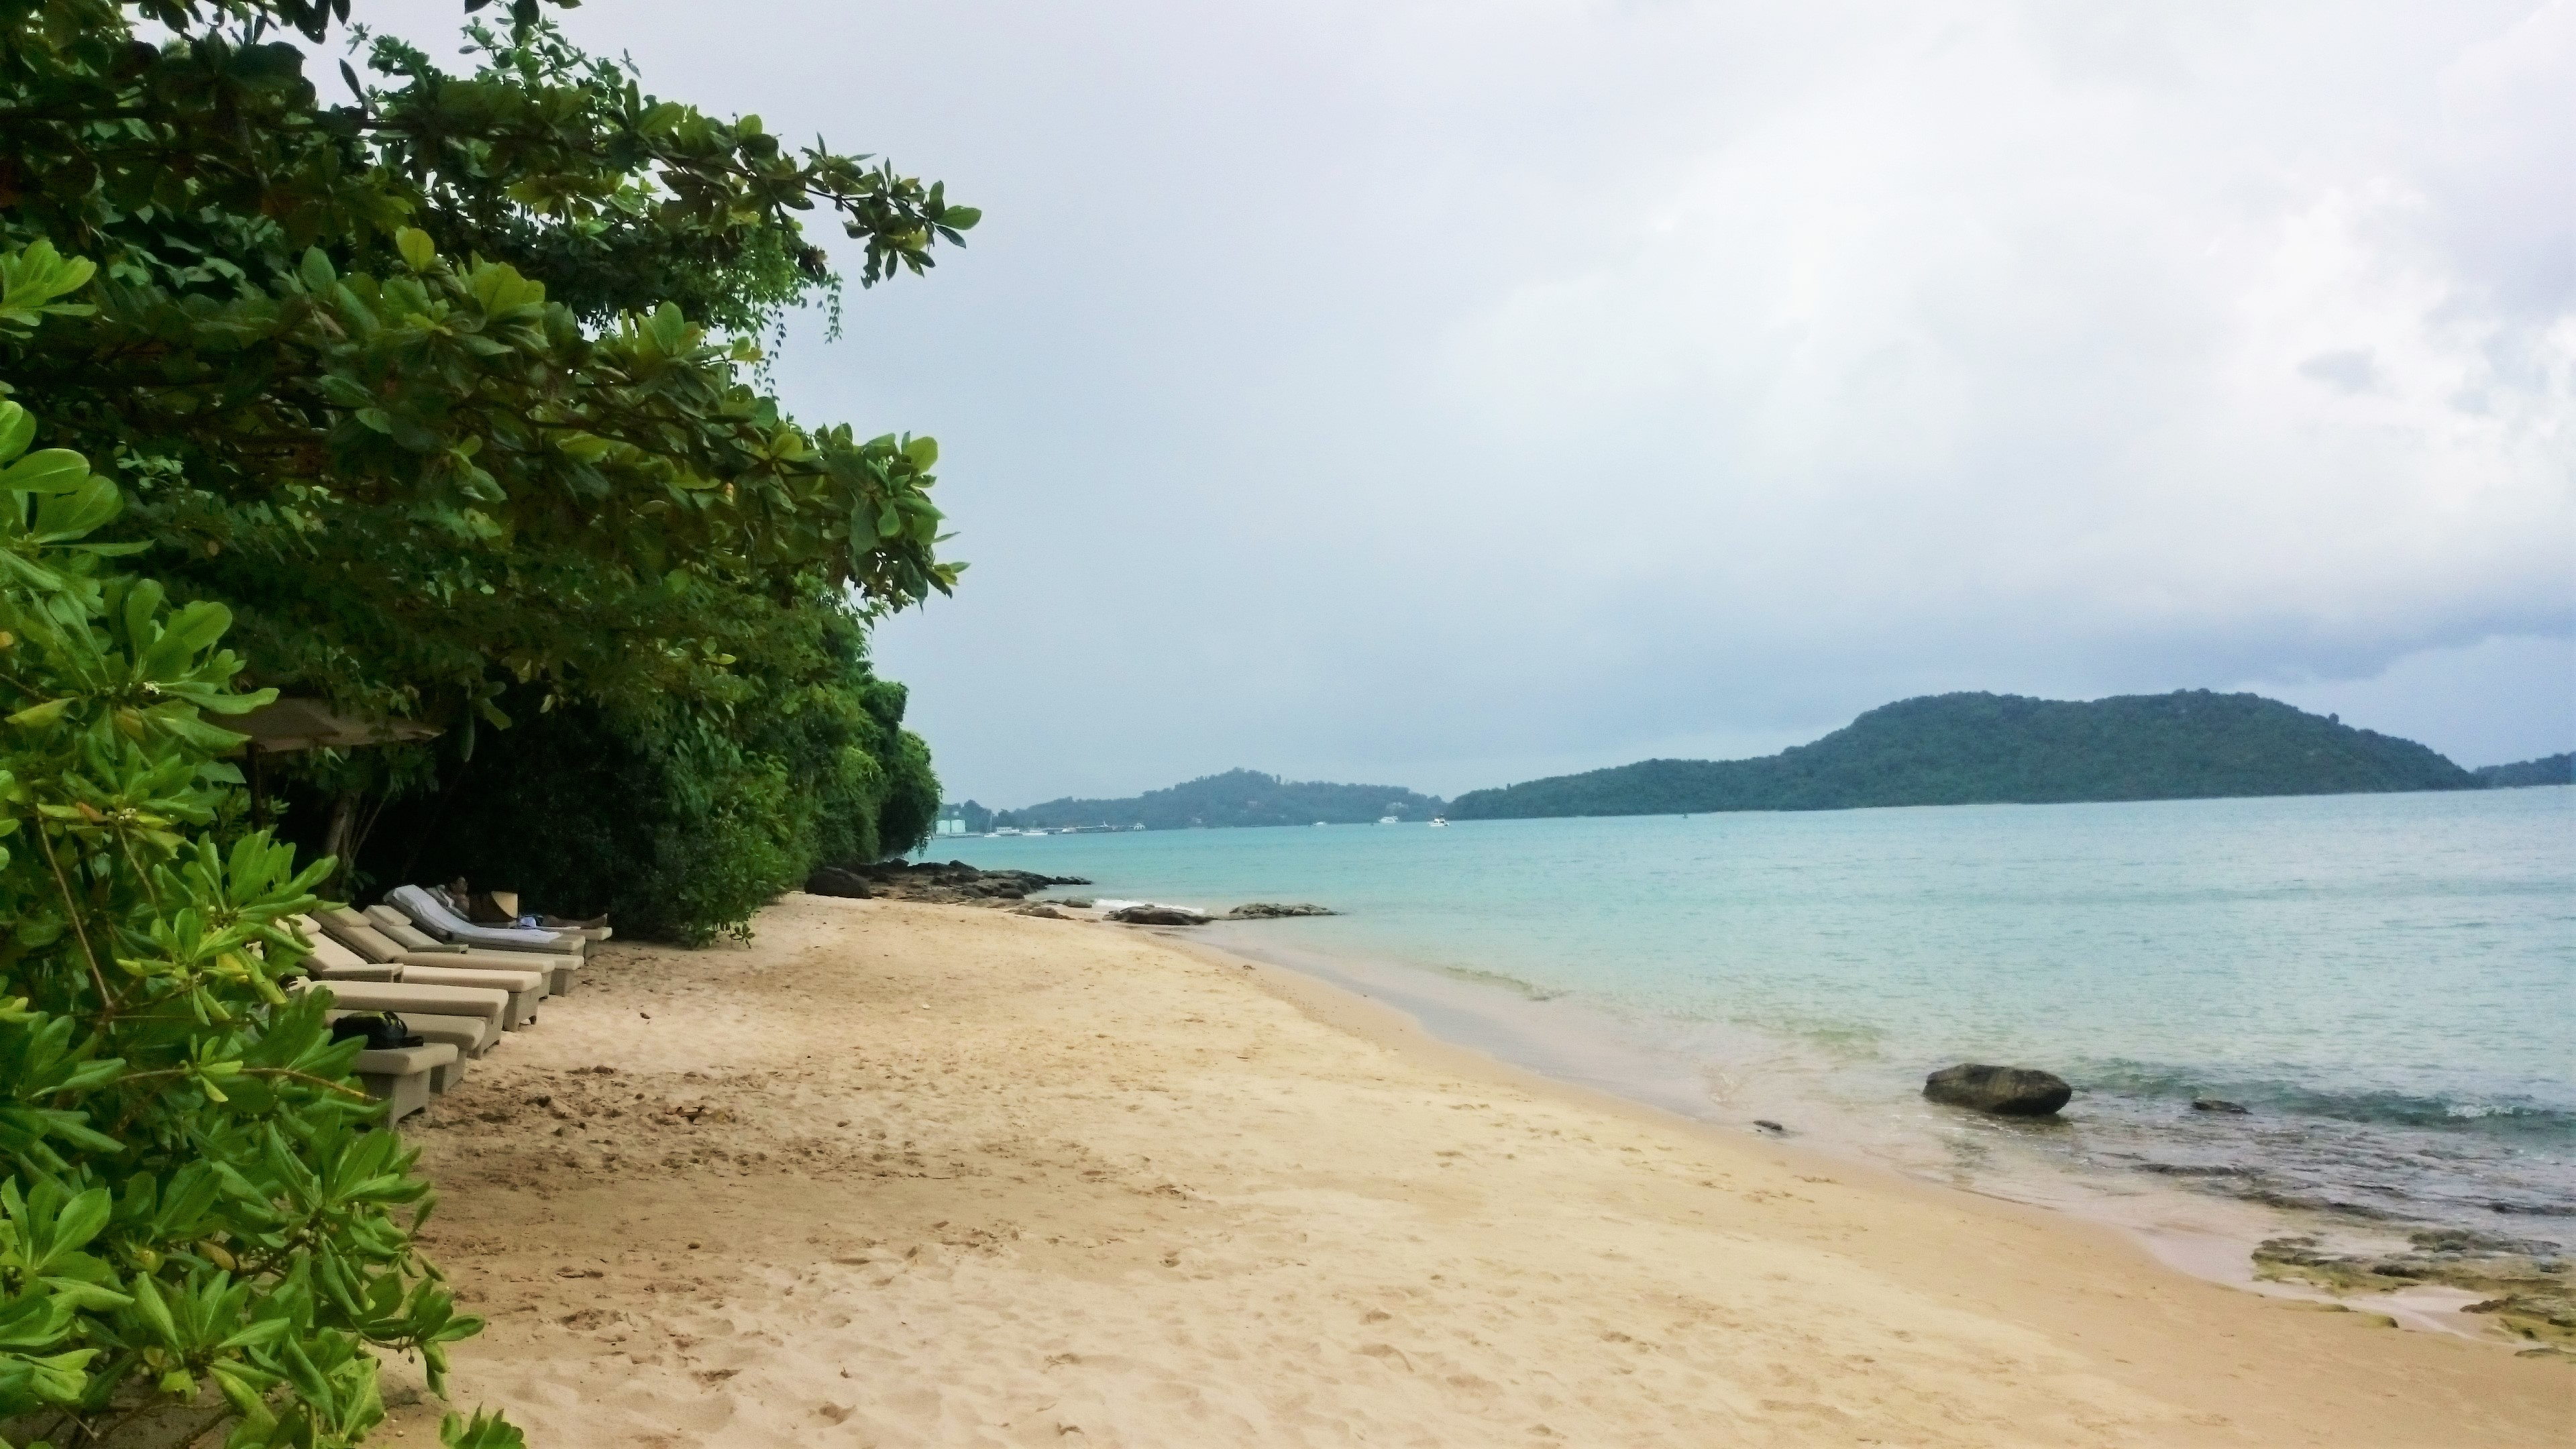 amatara-beach-area-dsc_0168